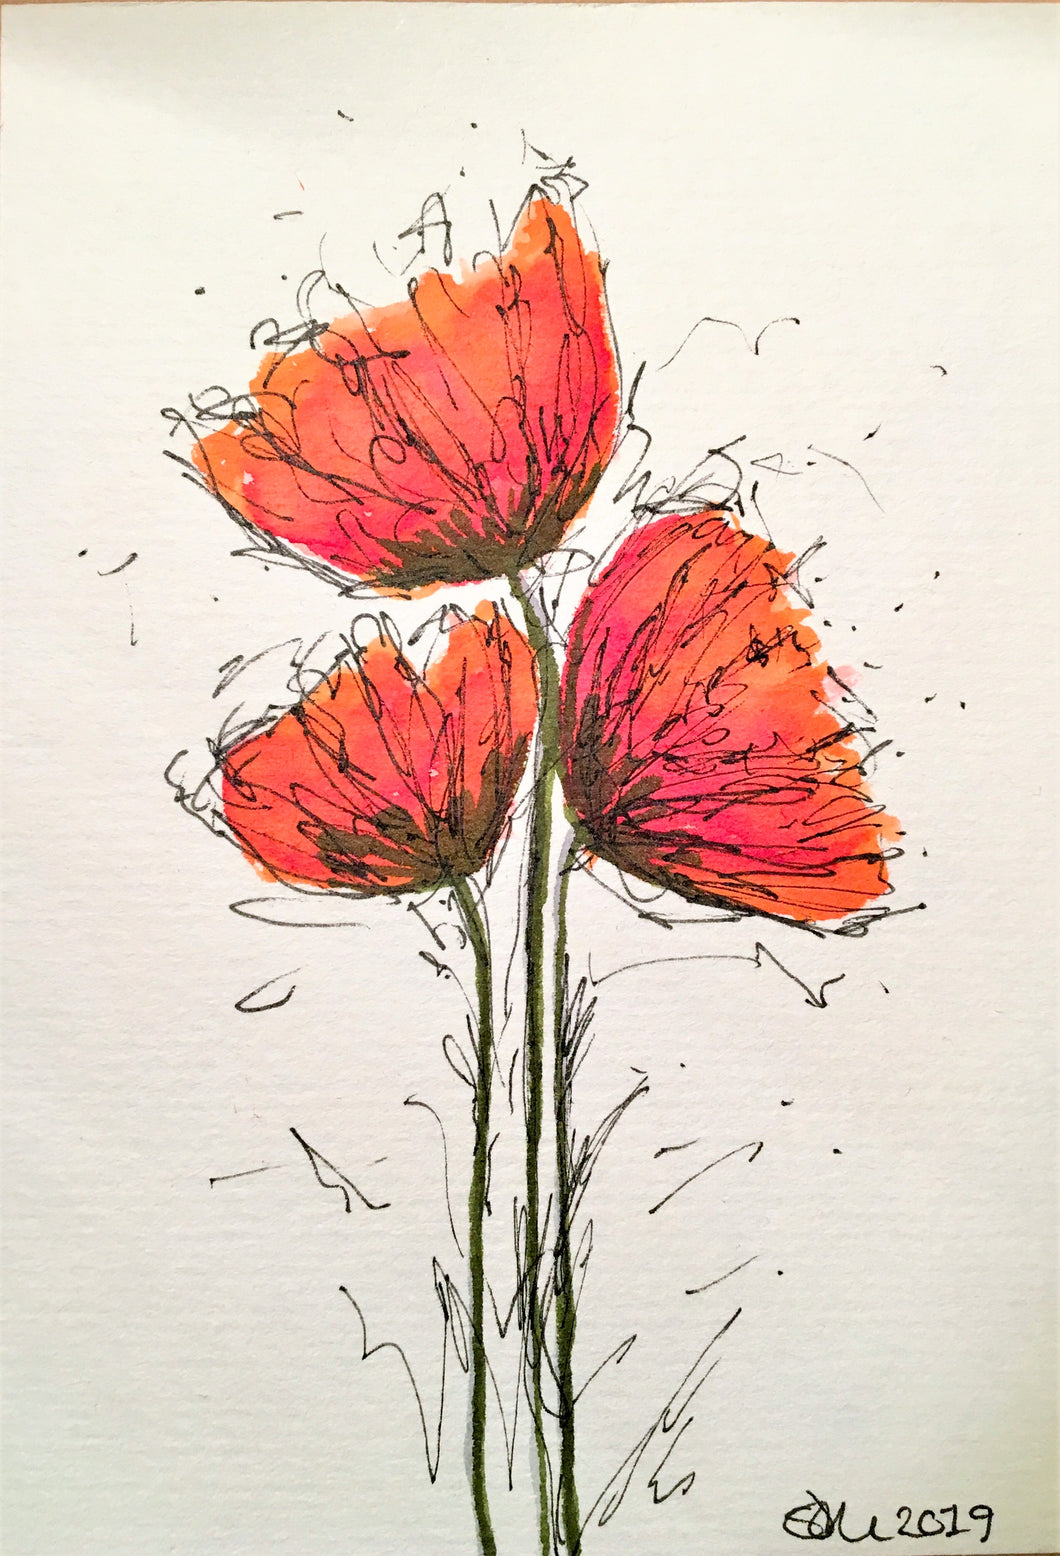 Handpainted Watercolour Greeting Card - Small Abstract Red/Orange Poppy Flowers - eDgE dEsiGn London